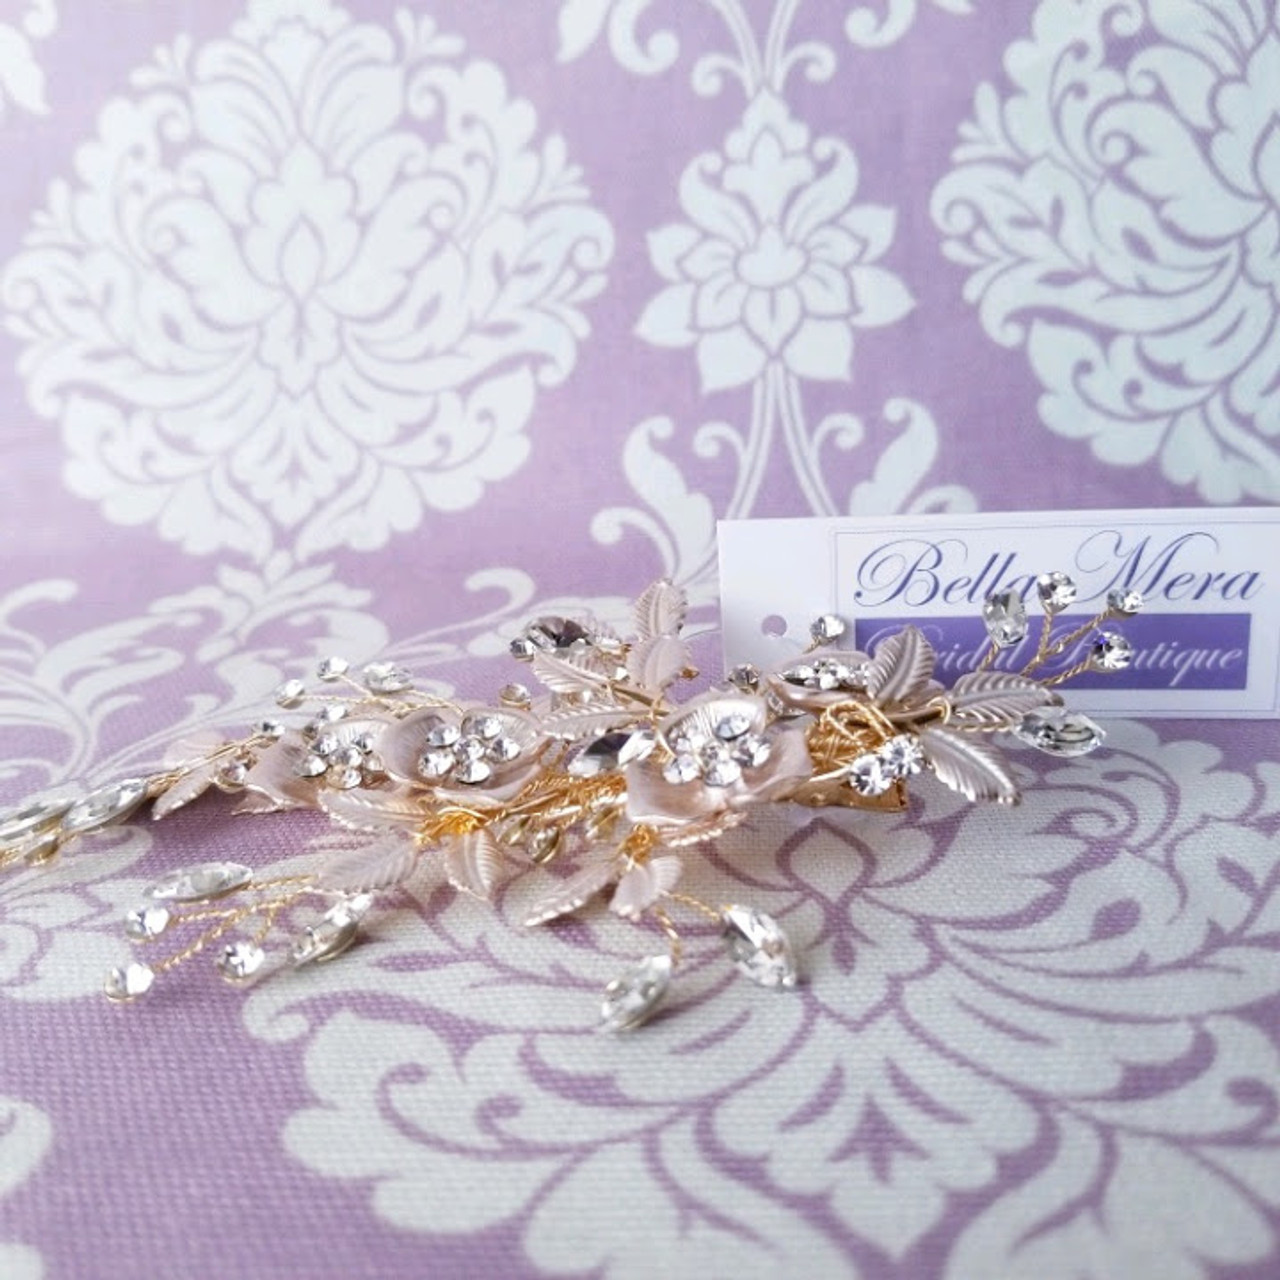 Bella Mera Studio Gold Flowers Leaves Clip - C601 - Marquis Stones